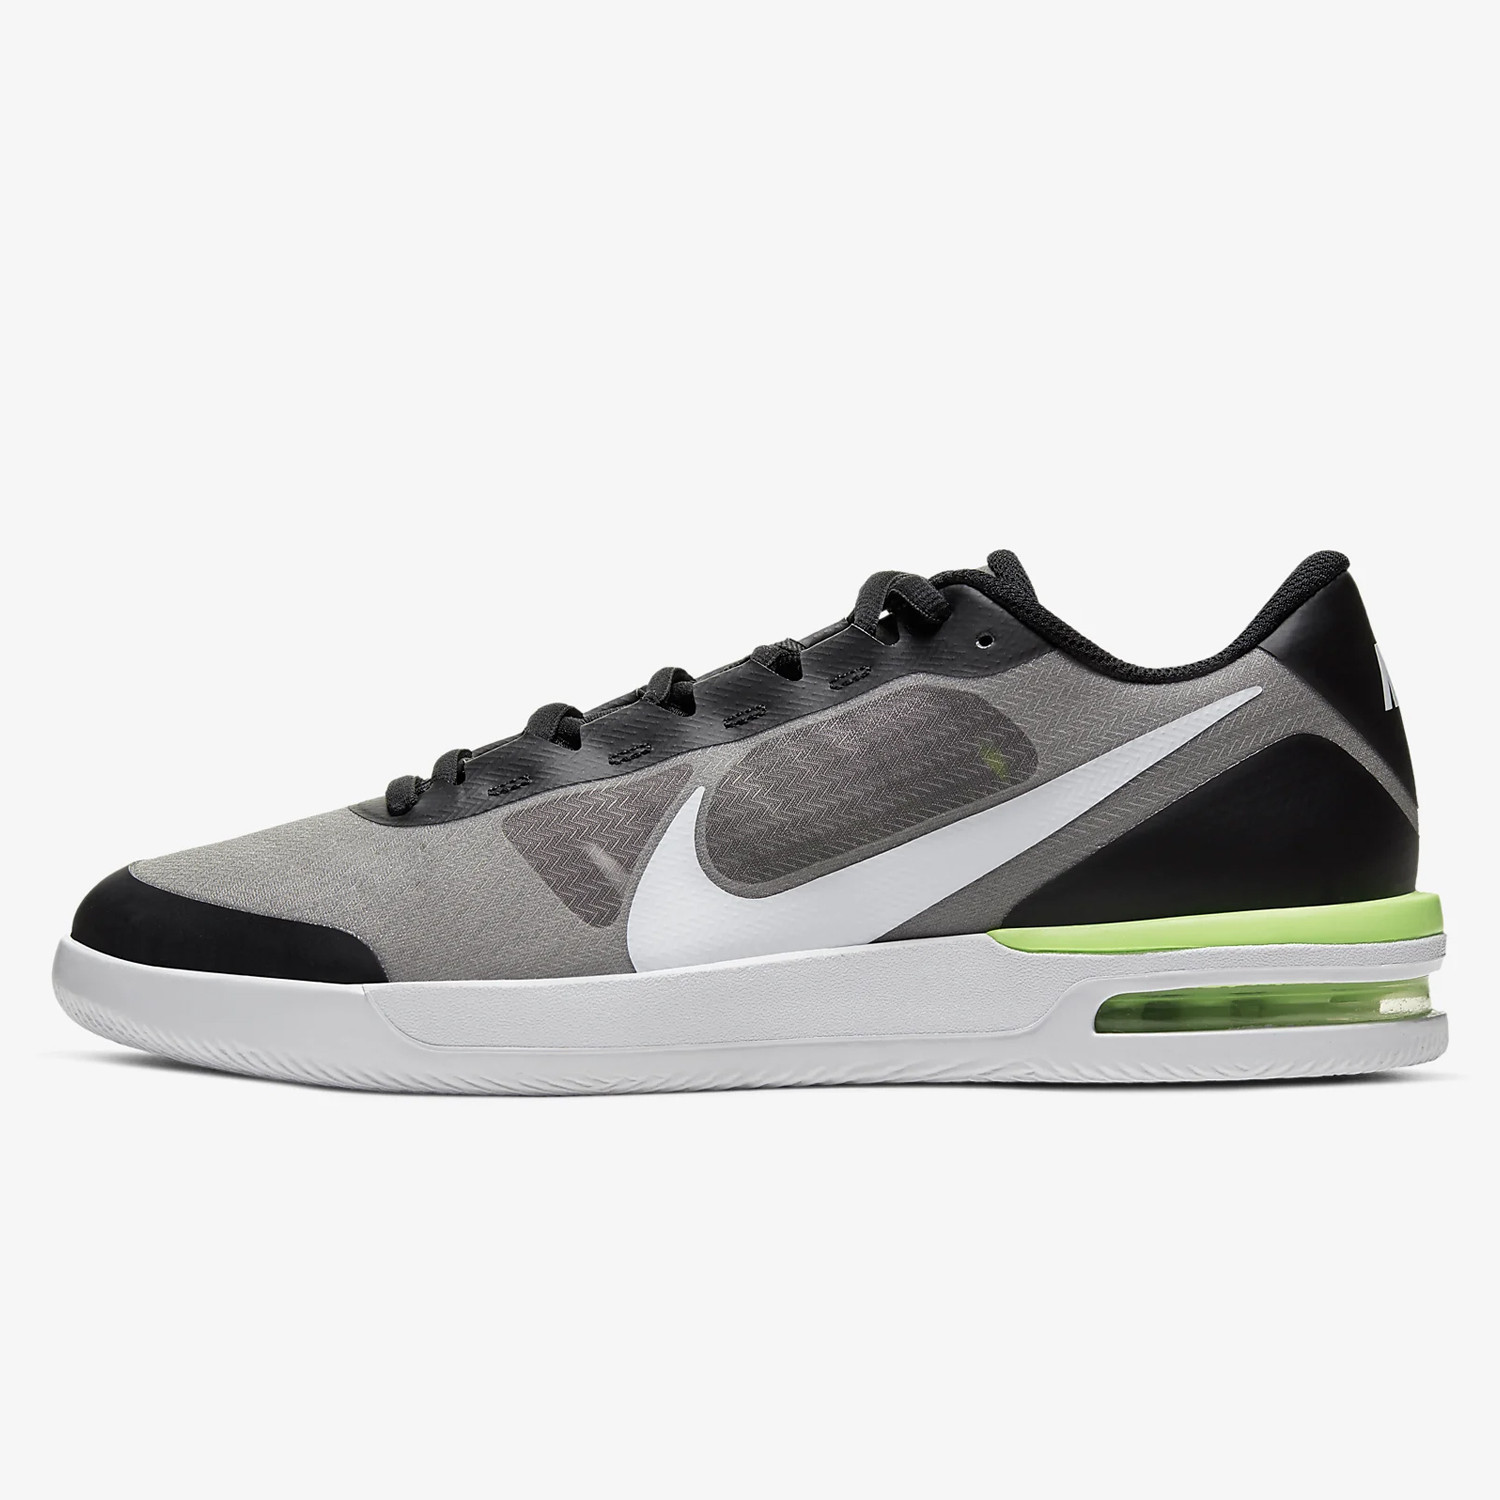 Nike Court Air Max Vapor Wing Ανδρικά Παπούτσια (9000043583_13193)